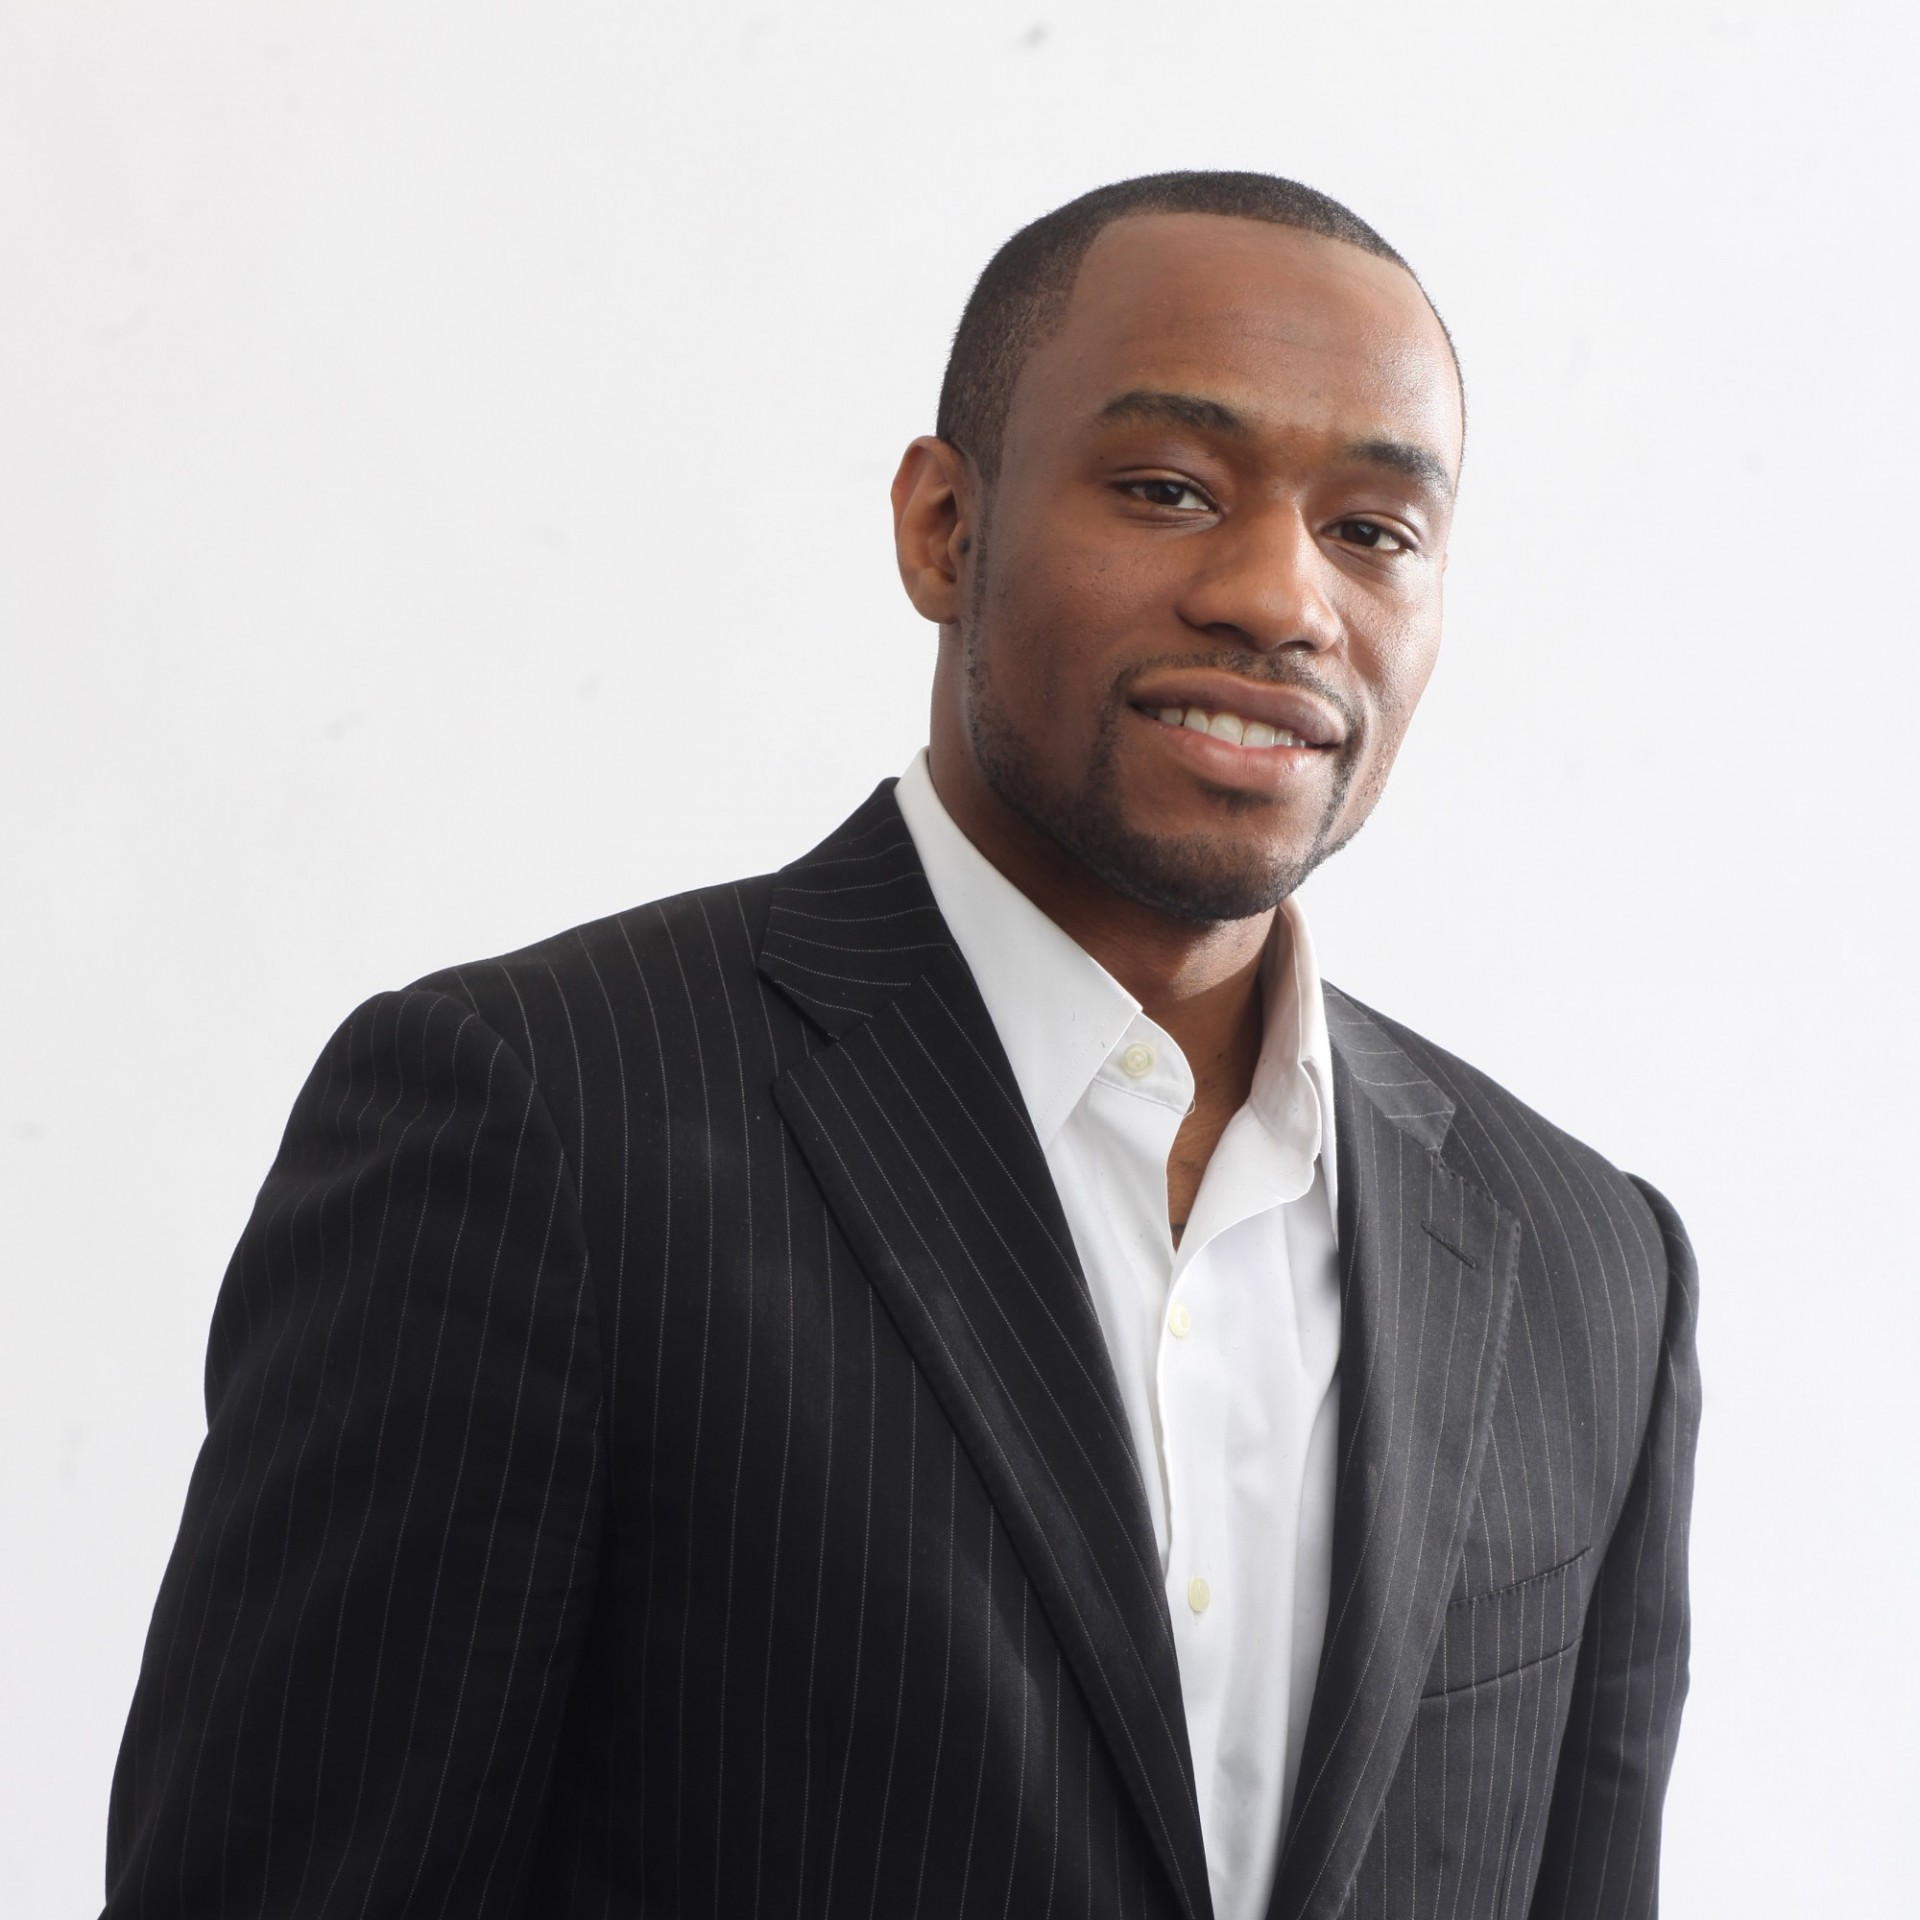 Marc Lamont Hill   Dr. Marc Lamont Hill is one of the leading intellectual voices in the country. An award-winning journalist, Dr. Hill has received numerous prestigious awards from the National Association of Black Journalists, GLAAD, and the International Academy of Digital Arts and Sciences. Dr. Hill is the Steve Charles Professor of Media, Cities, and Solutions at Temple UniversityDr. Hill is the author or co-author of four books: the award-winning Beats, Rhymes, and Classroom Life: Hip-Hop Pedagogy and the Politics of Identity; The Classroom and the Cell: Conversations on Black life in America; the New York Times bestseller Nobody: Casualties of America's War on The Vulnerable from Ferguson to Flint and Beyond; and Gentrifier. Trained as an anthropologist of education, Dr. Hill holds a Ph.D. (with distinction) from the University of Pennsylvania. His research focuses on the intersections between culture, politics, and education in the United States and the Middle East.